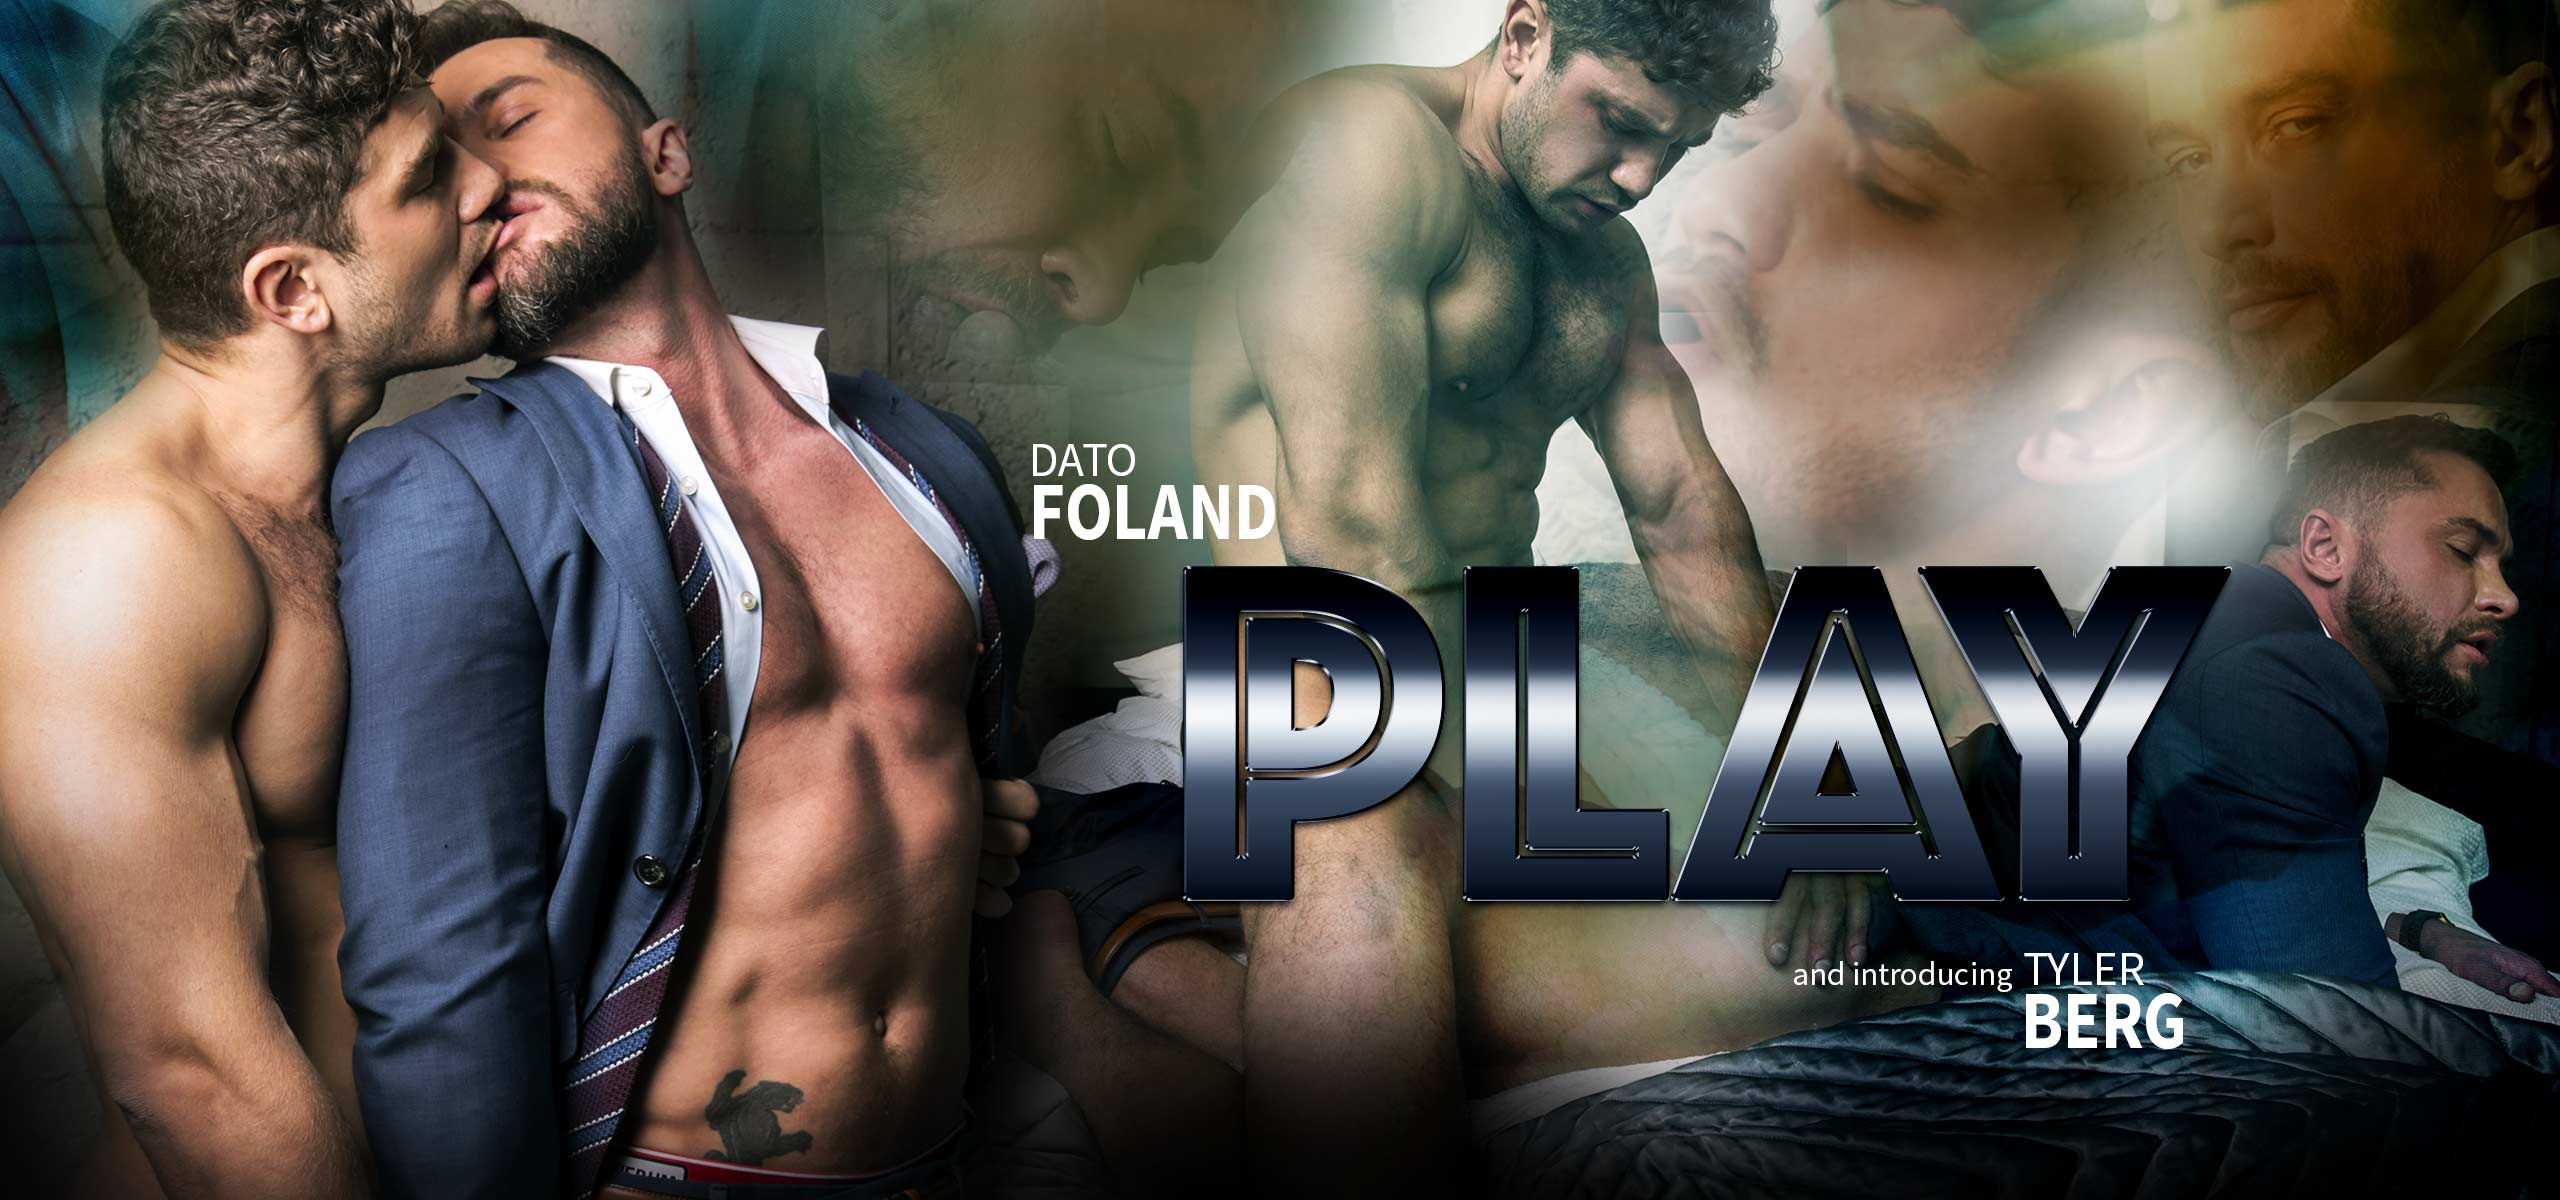 Men at Play Play Starring Dato Foland and Introducing Tyler Berg